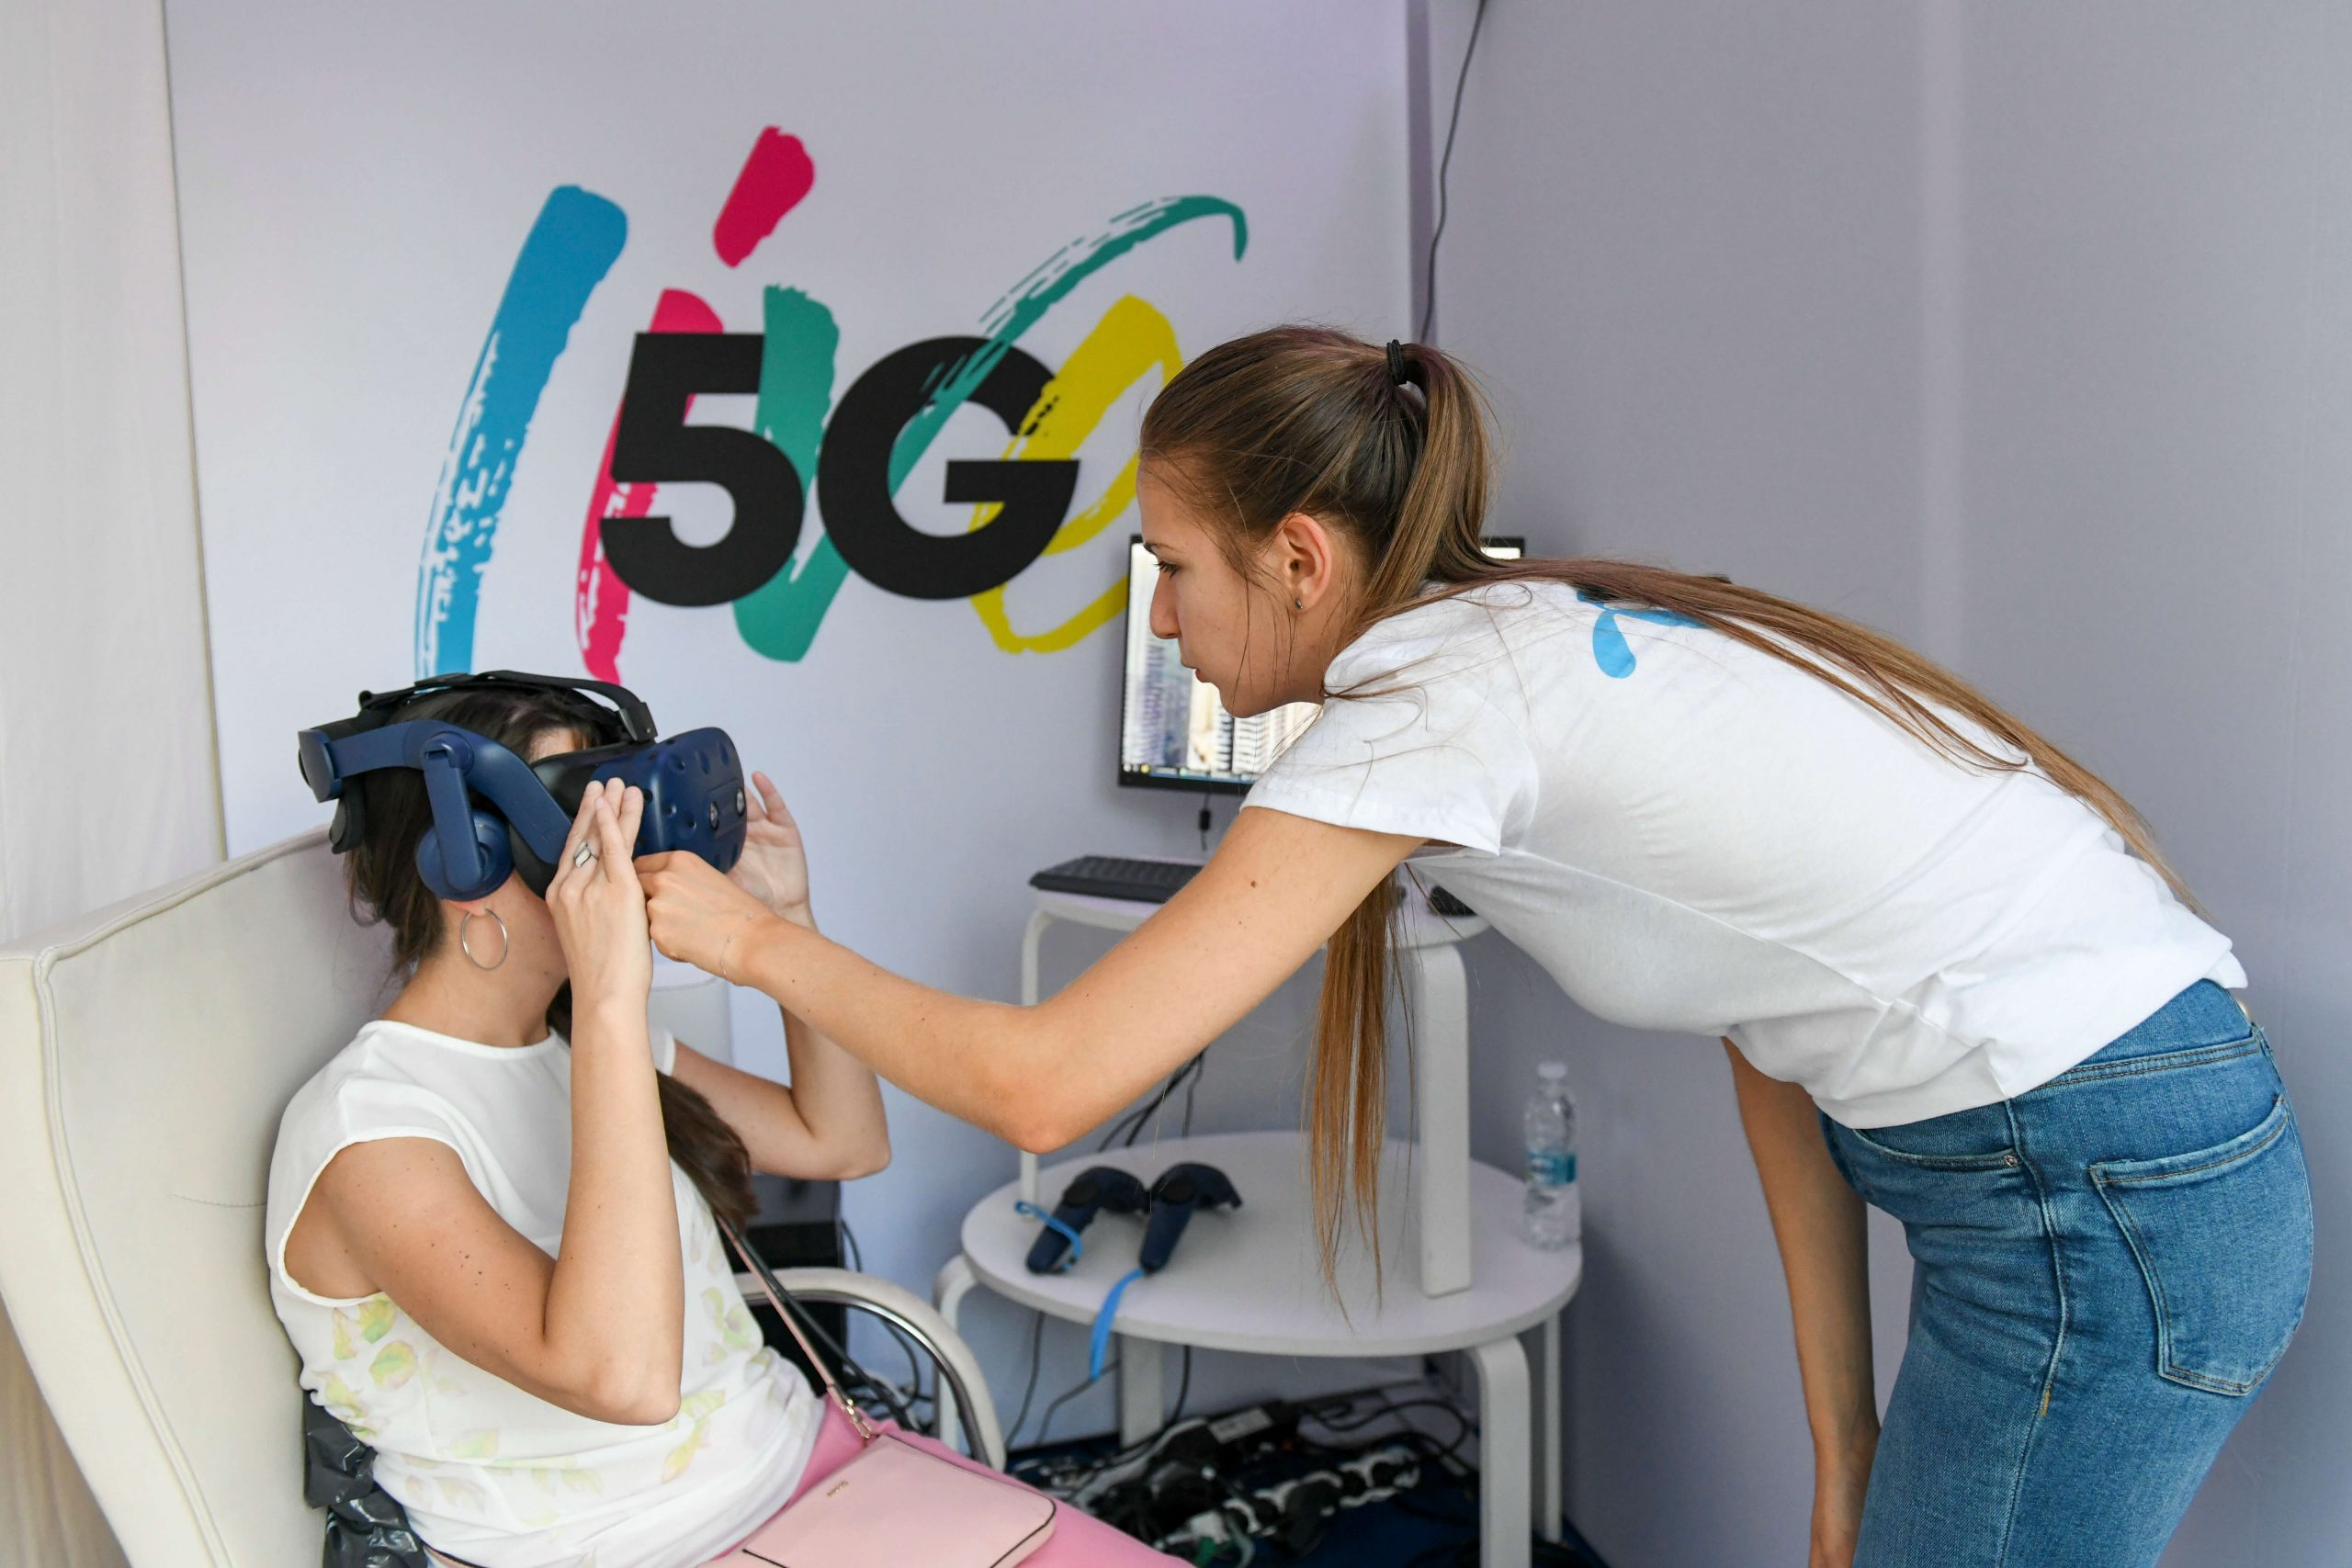 5g-telenor-test-1